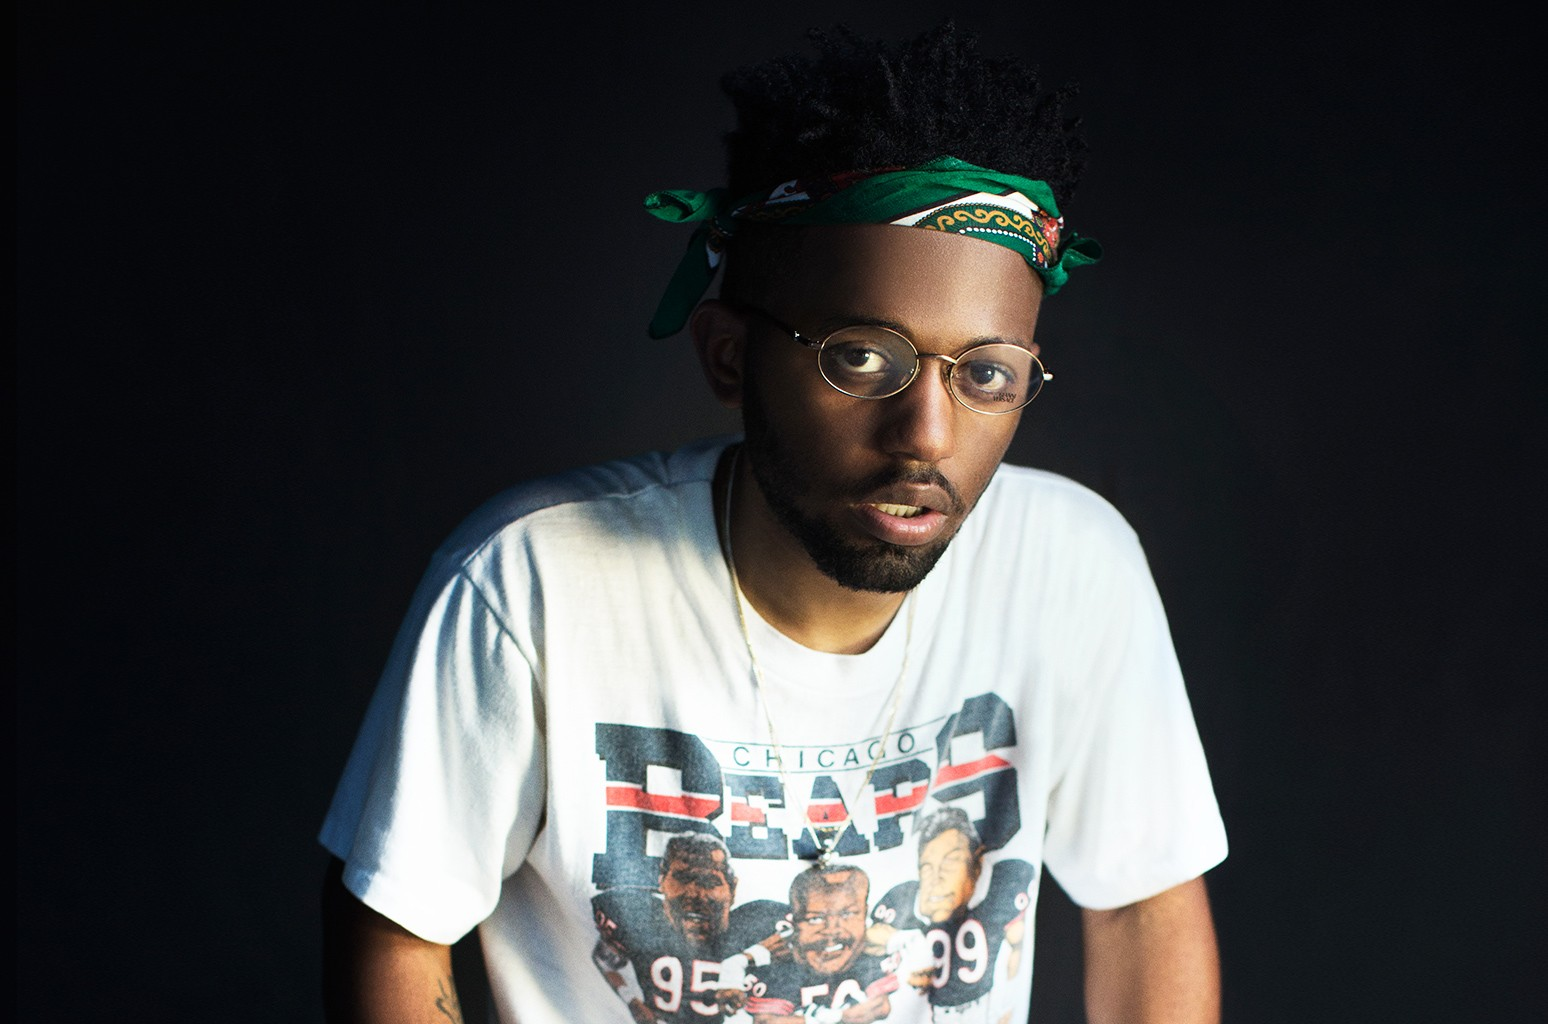 Madeintyo photographed on March 16, 2016 in Austin, Texas during SXSW.